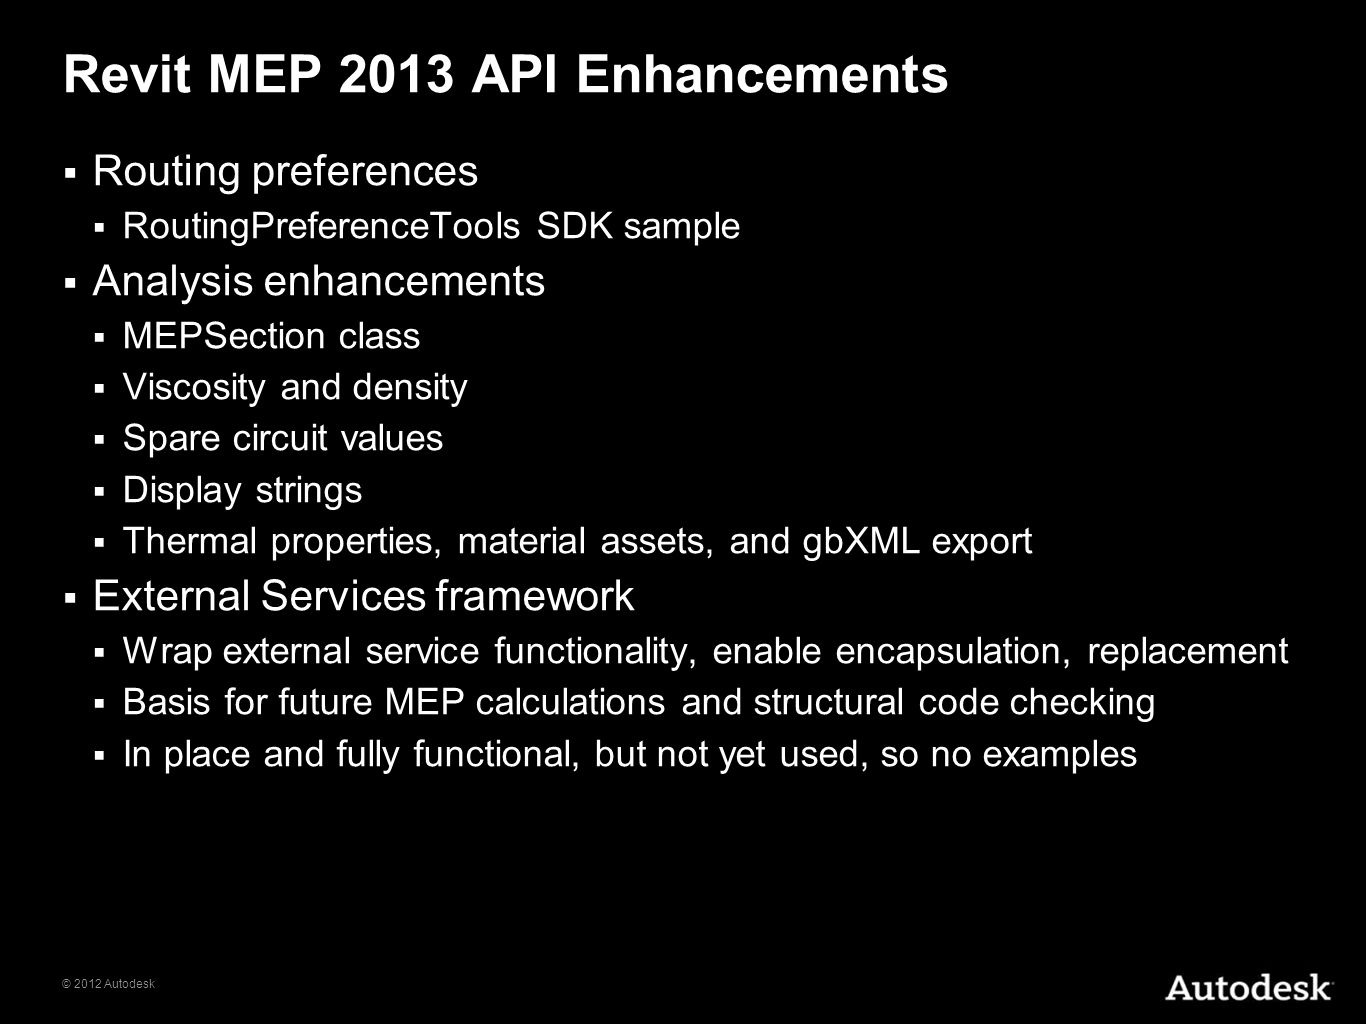 Revit MEP 2013 API Enhancements